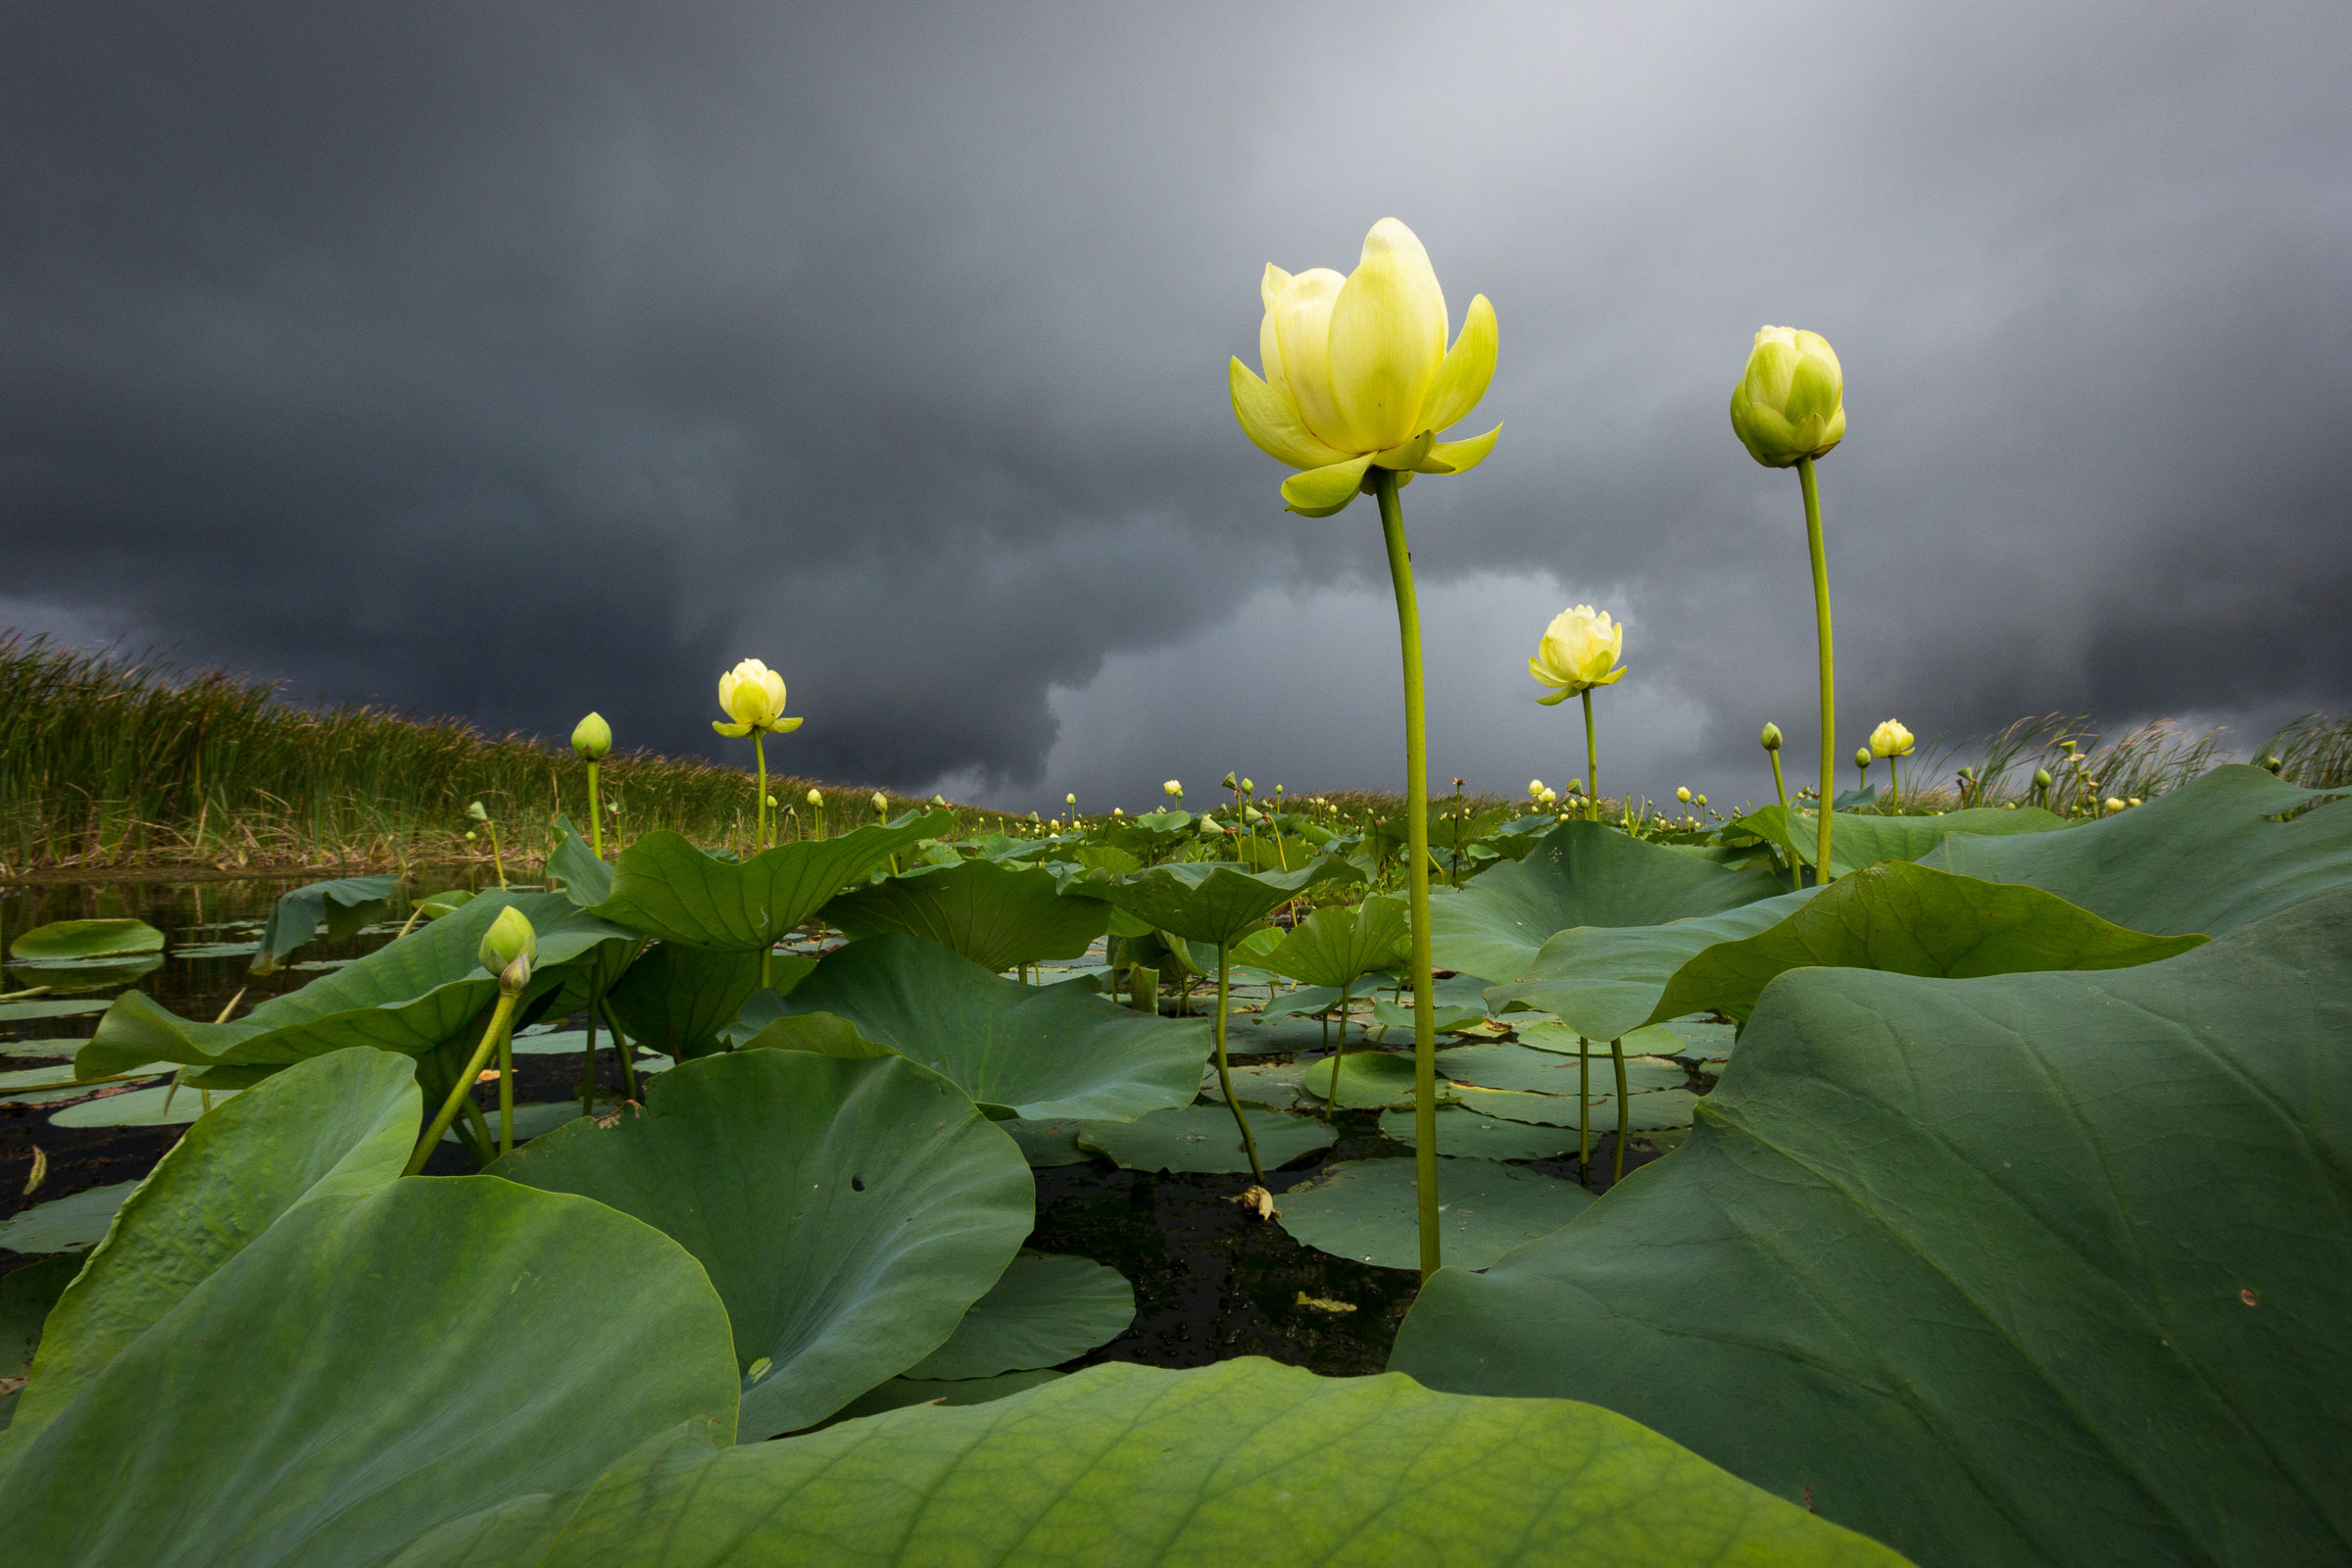 American lotus blooms brace for impact as a summer squall races across Lake Okeechobee in Florida, the seventh largest lake in the United States. Mac Stone